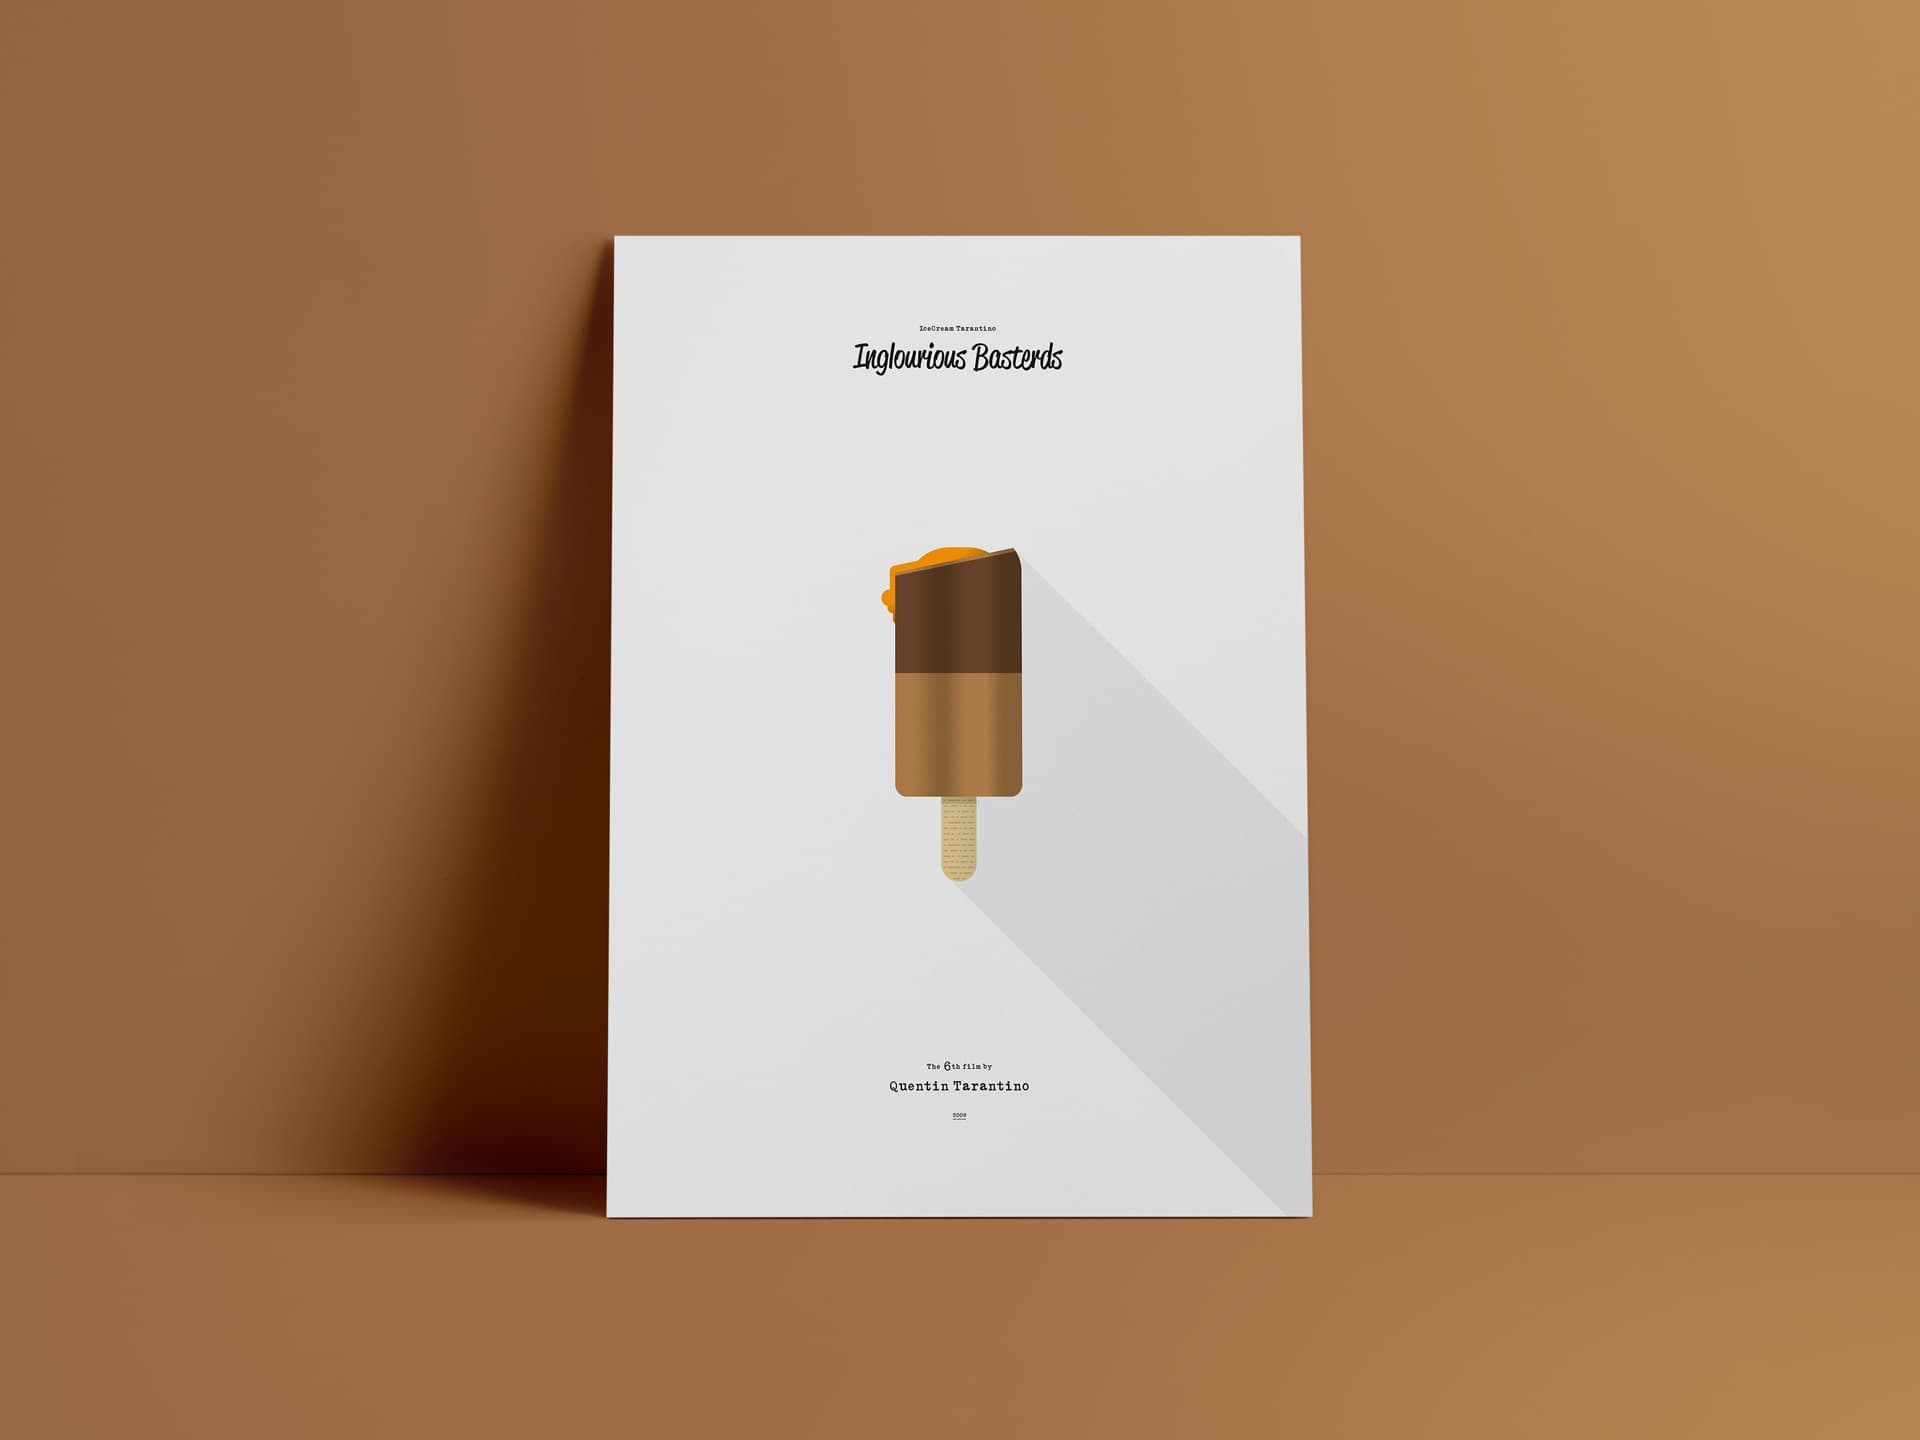 Tarantino Icecream Poster Design